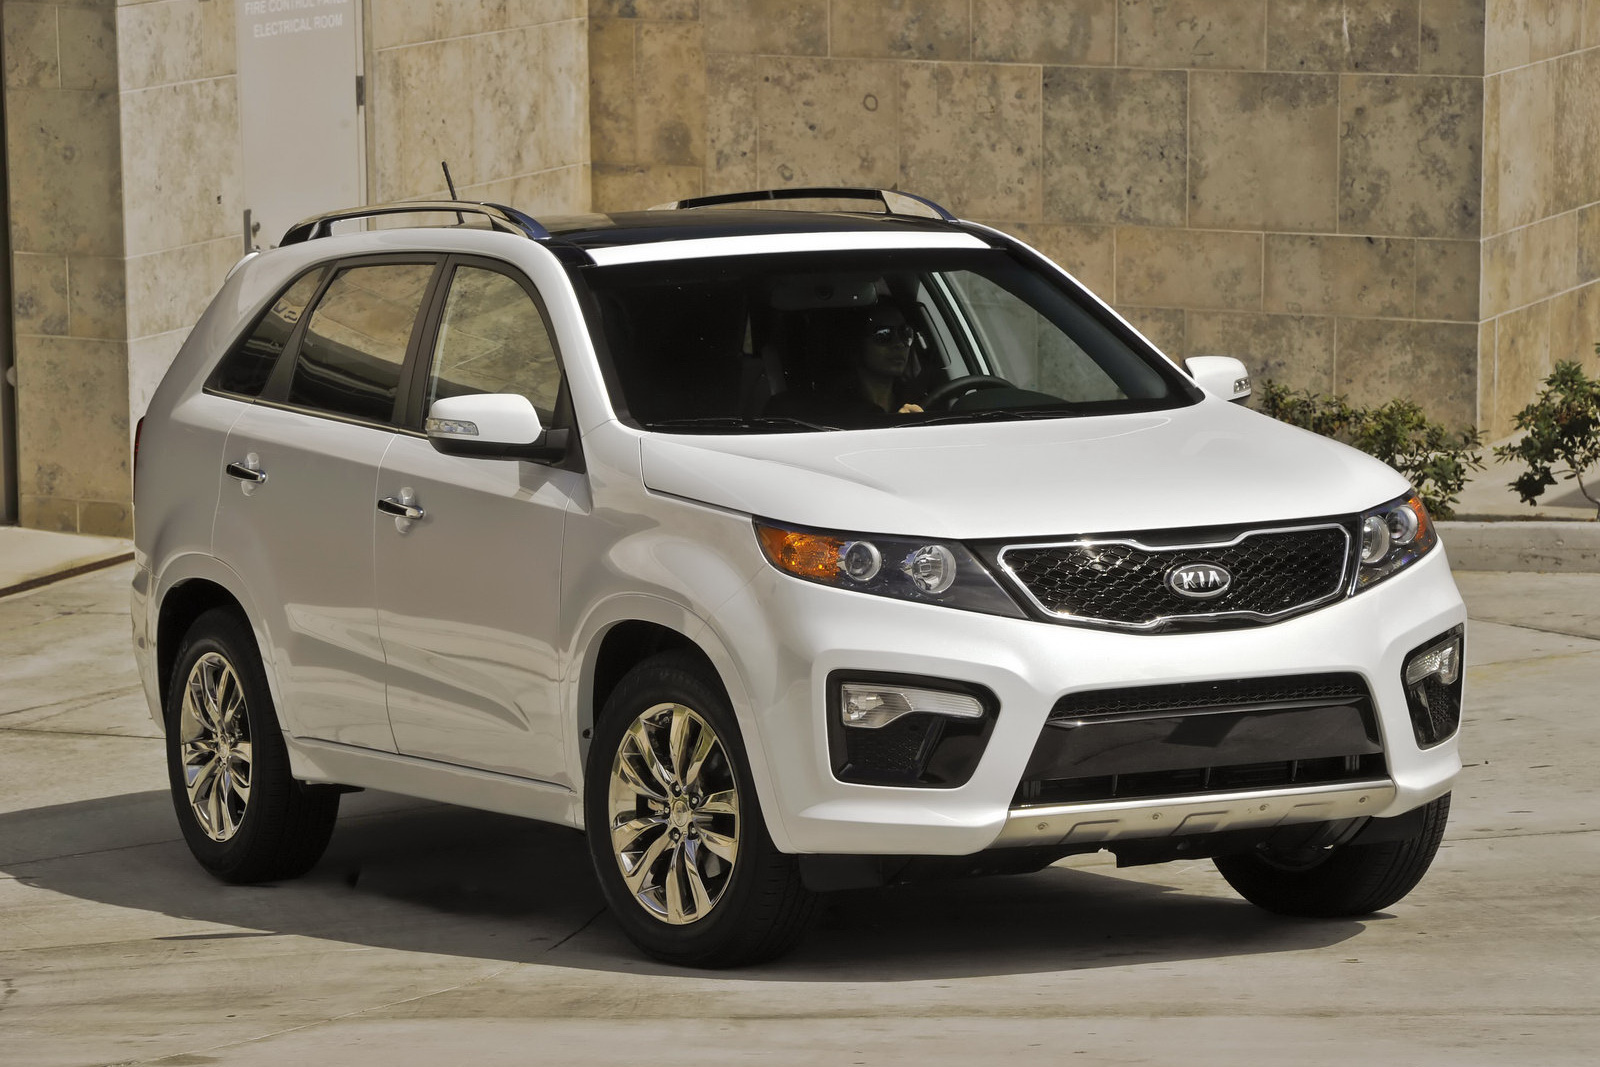 hyundai and kia recall 2011 santa fe and 2011 sorento for. Black Bedroom Furniture Sets. Home Design Ideas